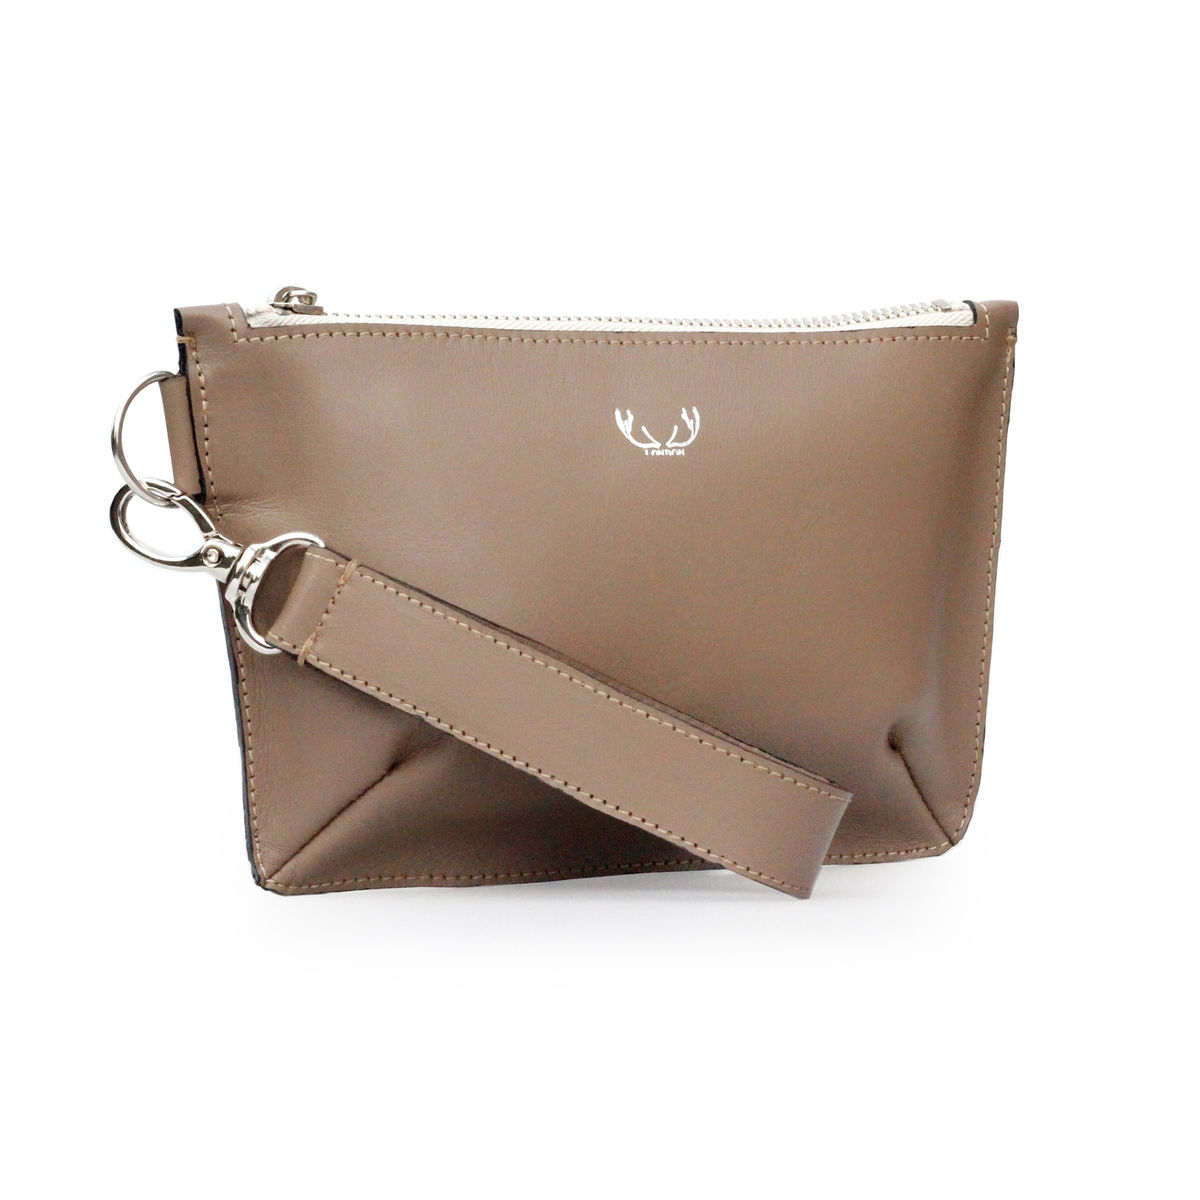 Mink Mini Sienna Clutch Bag - product images  of